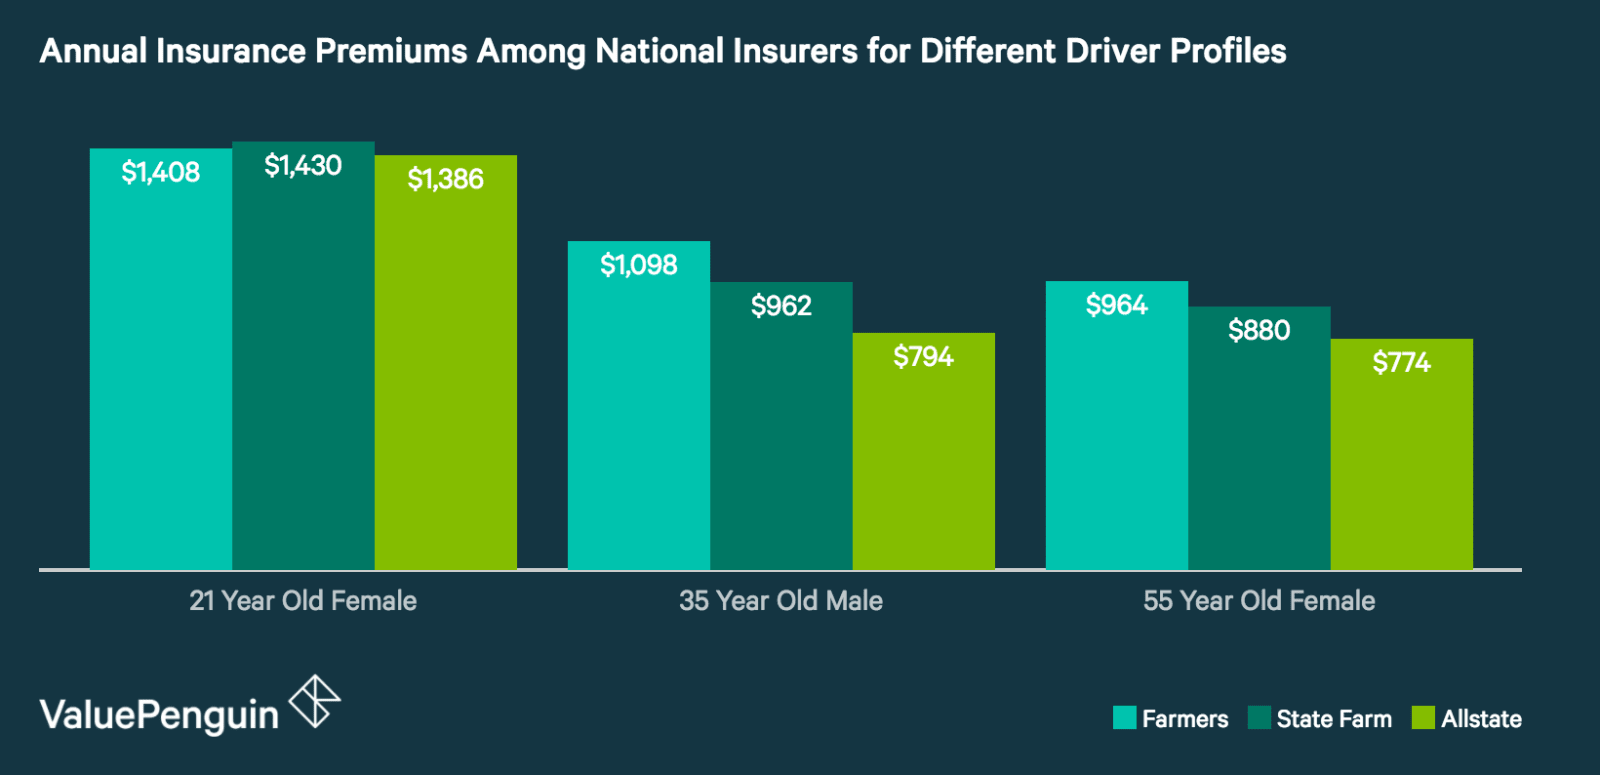 How Do Farmers' Auto Insurance Quotes Compare to Other Insurers?